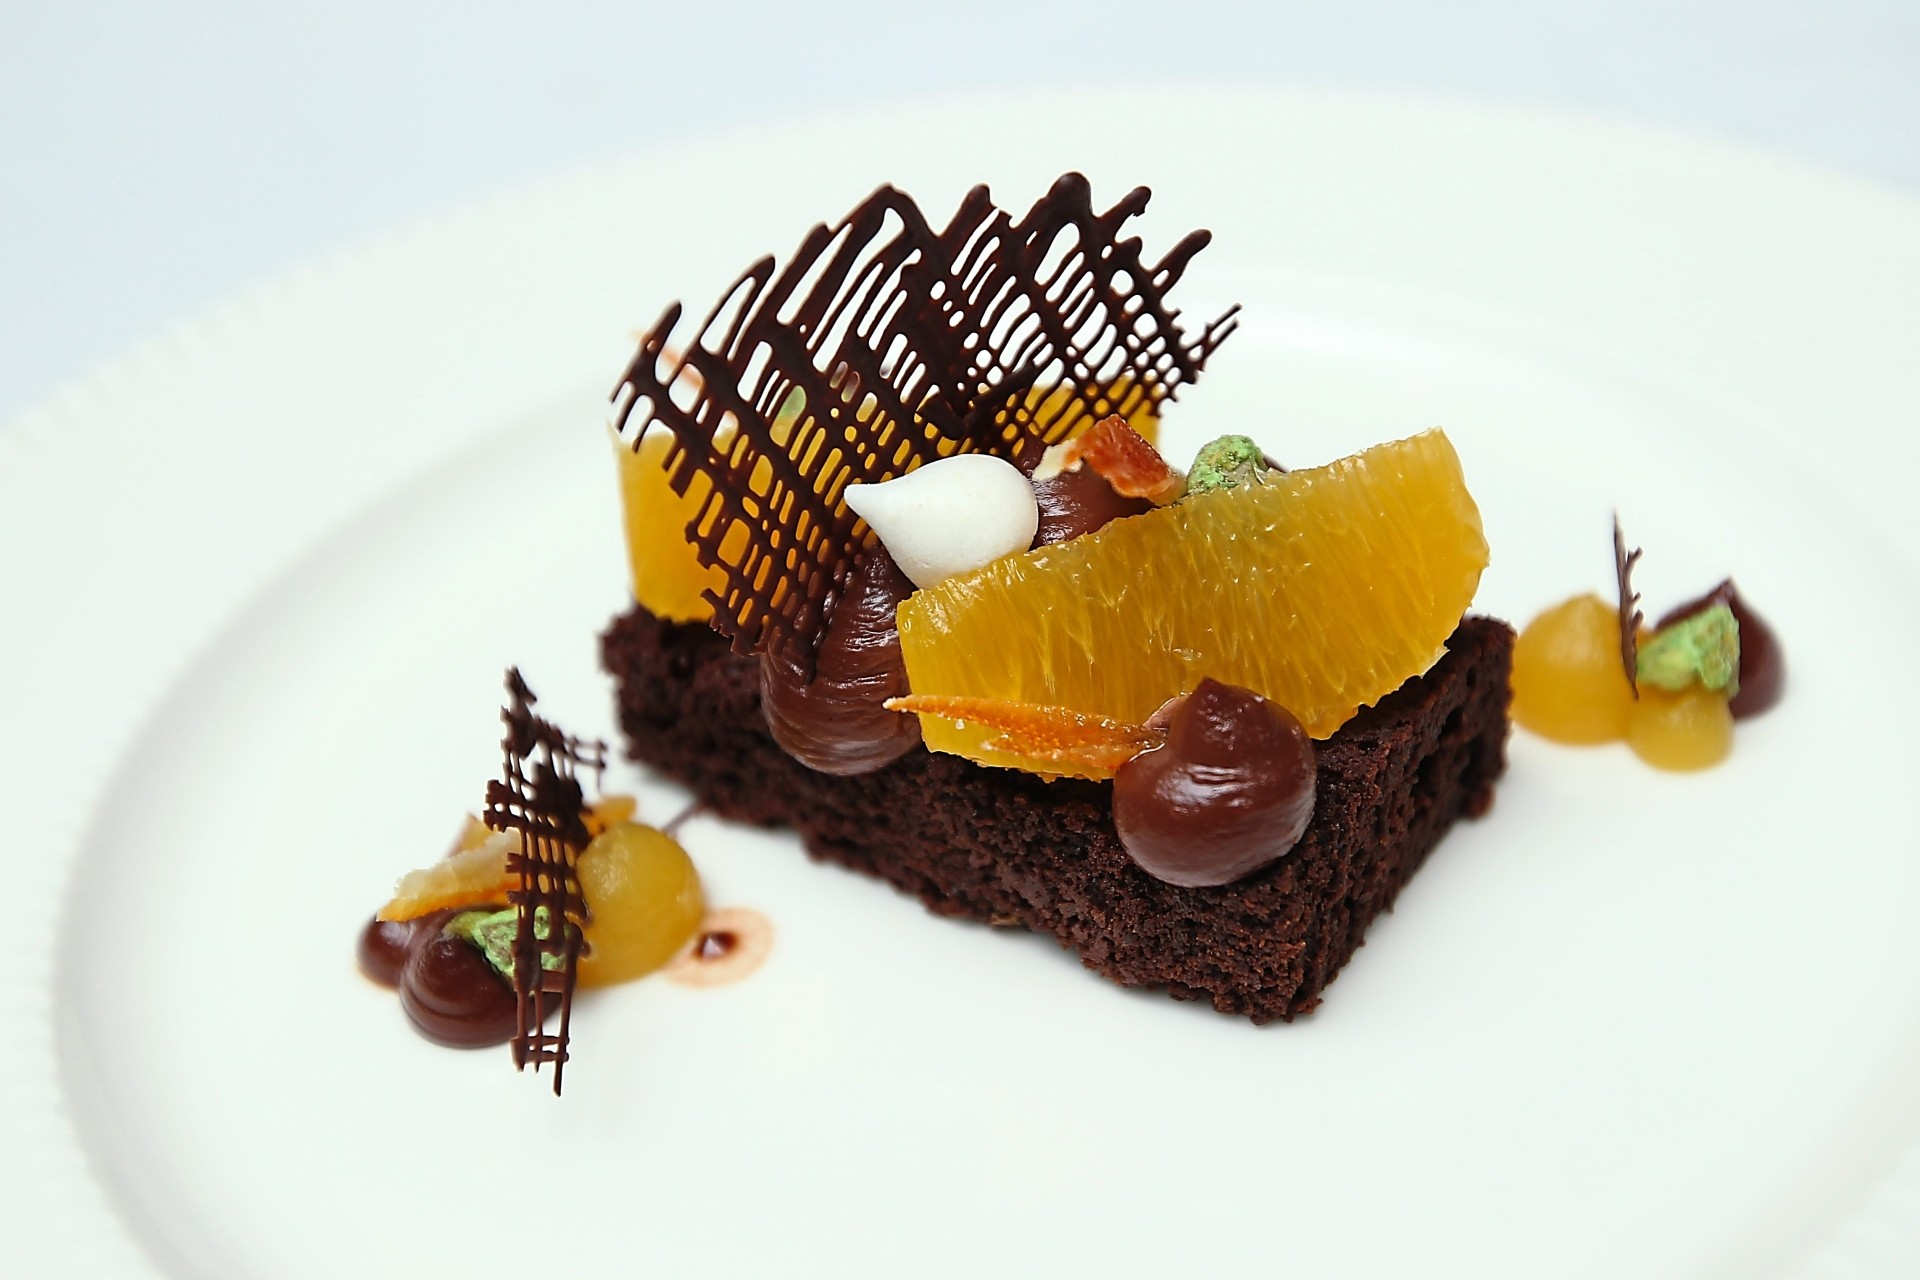 The chocolate tort is the perfect dessert for chocolate lovers.